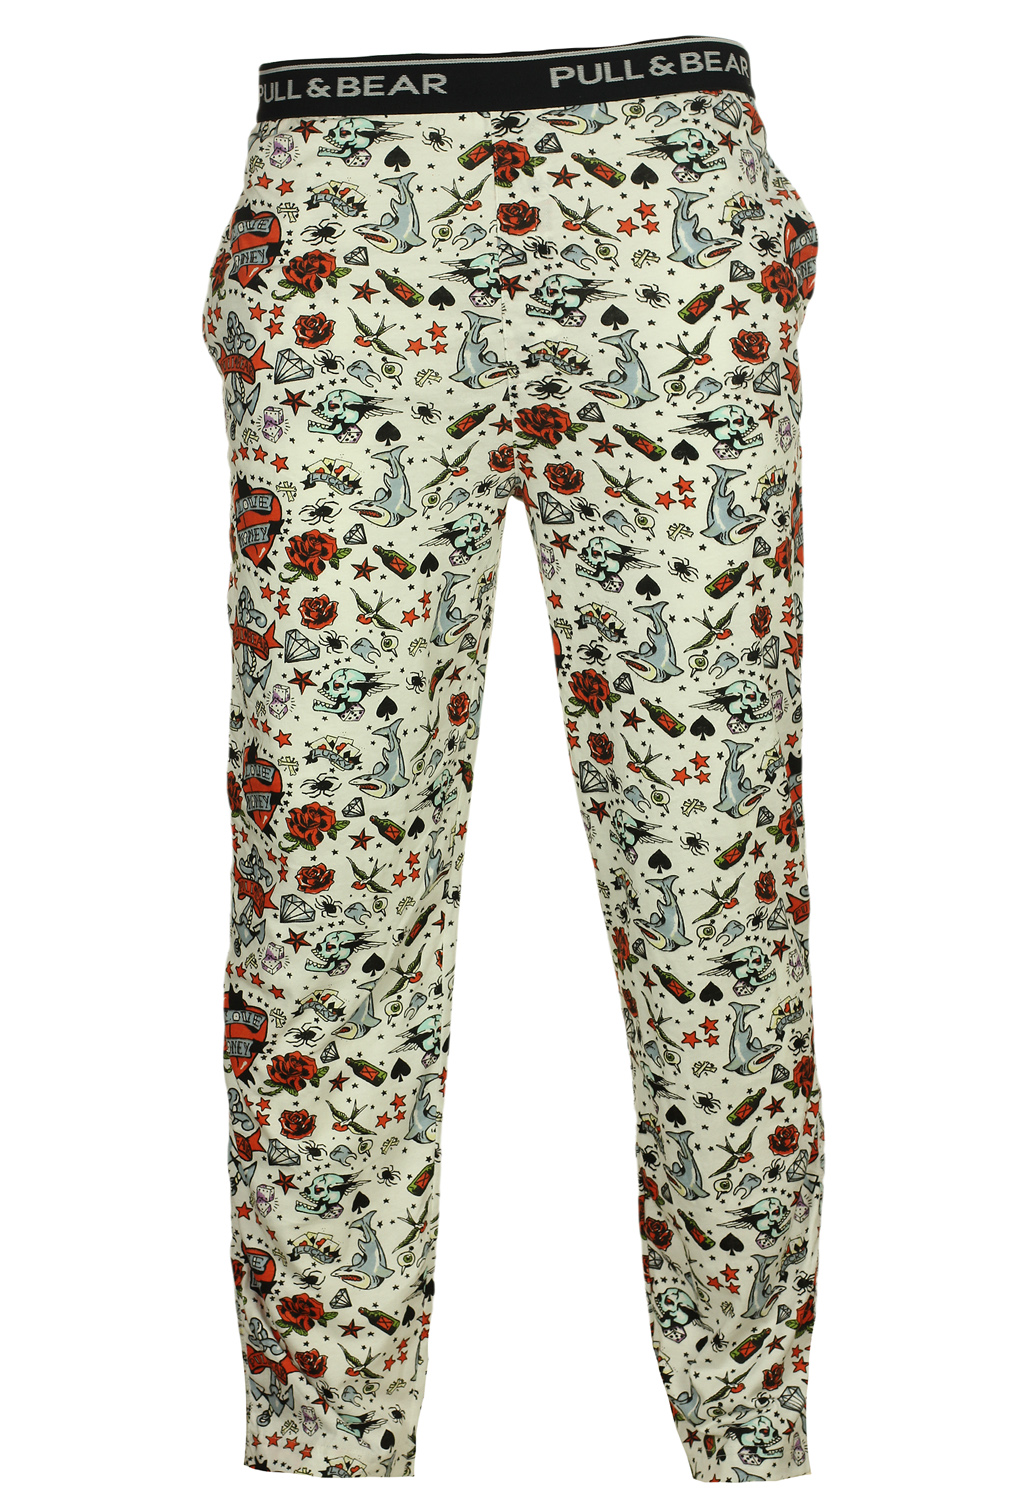 Pantaloni sport Pull and Bear Lisle White, preturi, ieftine